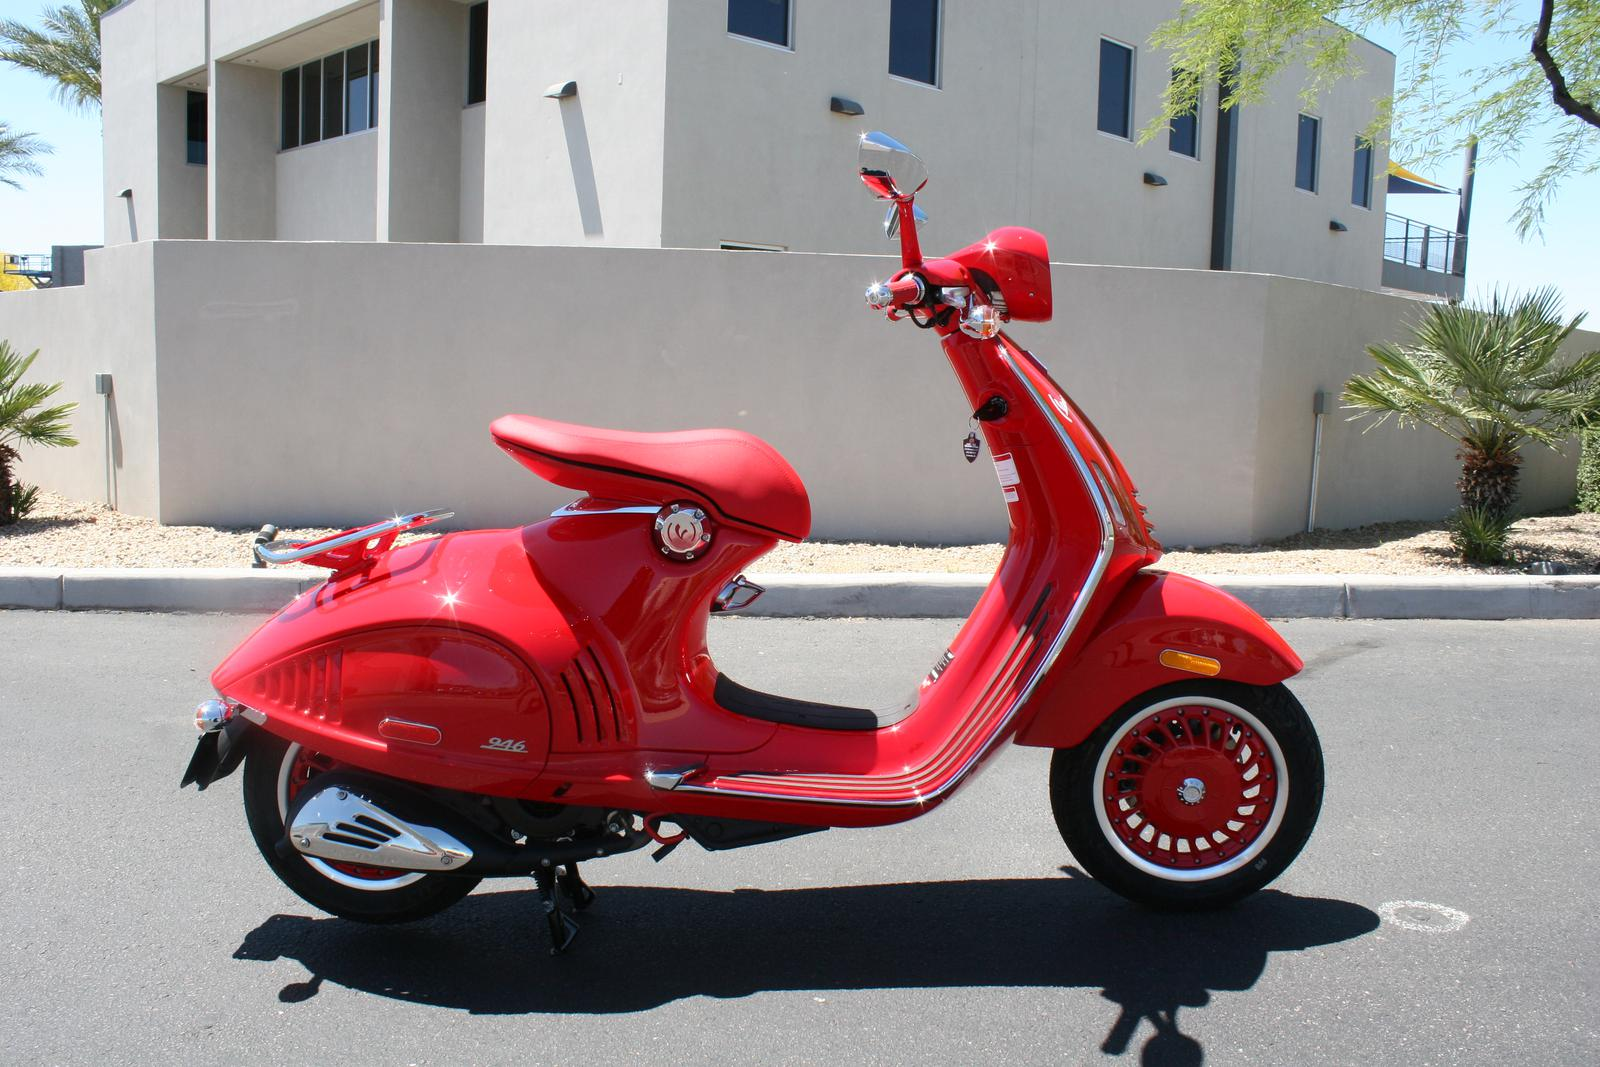 2018 Vespa 946 for sale in Scottsdale, AZ | GO AZ Motorcycles in